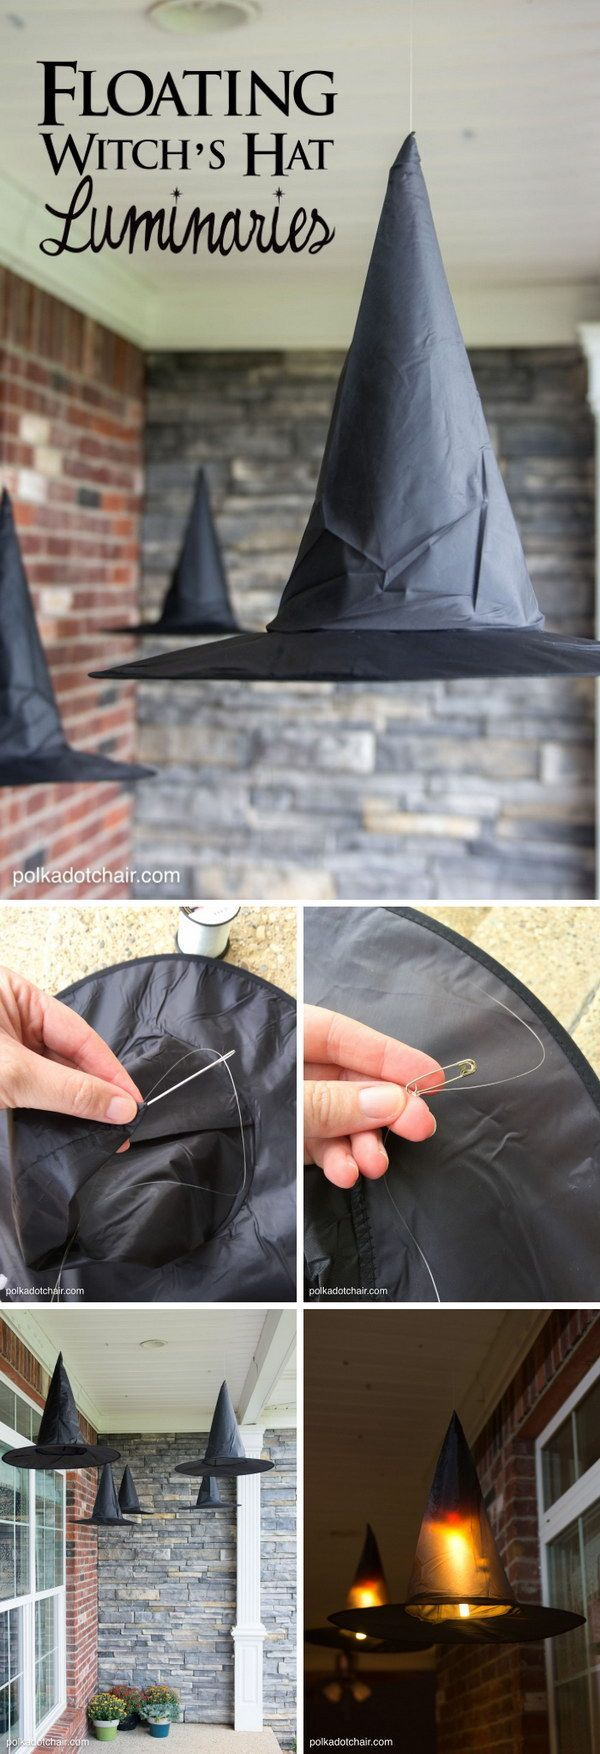 Clever decorating idea for a porch for Halloween, floating Witch's hat